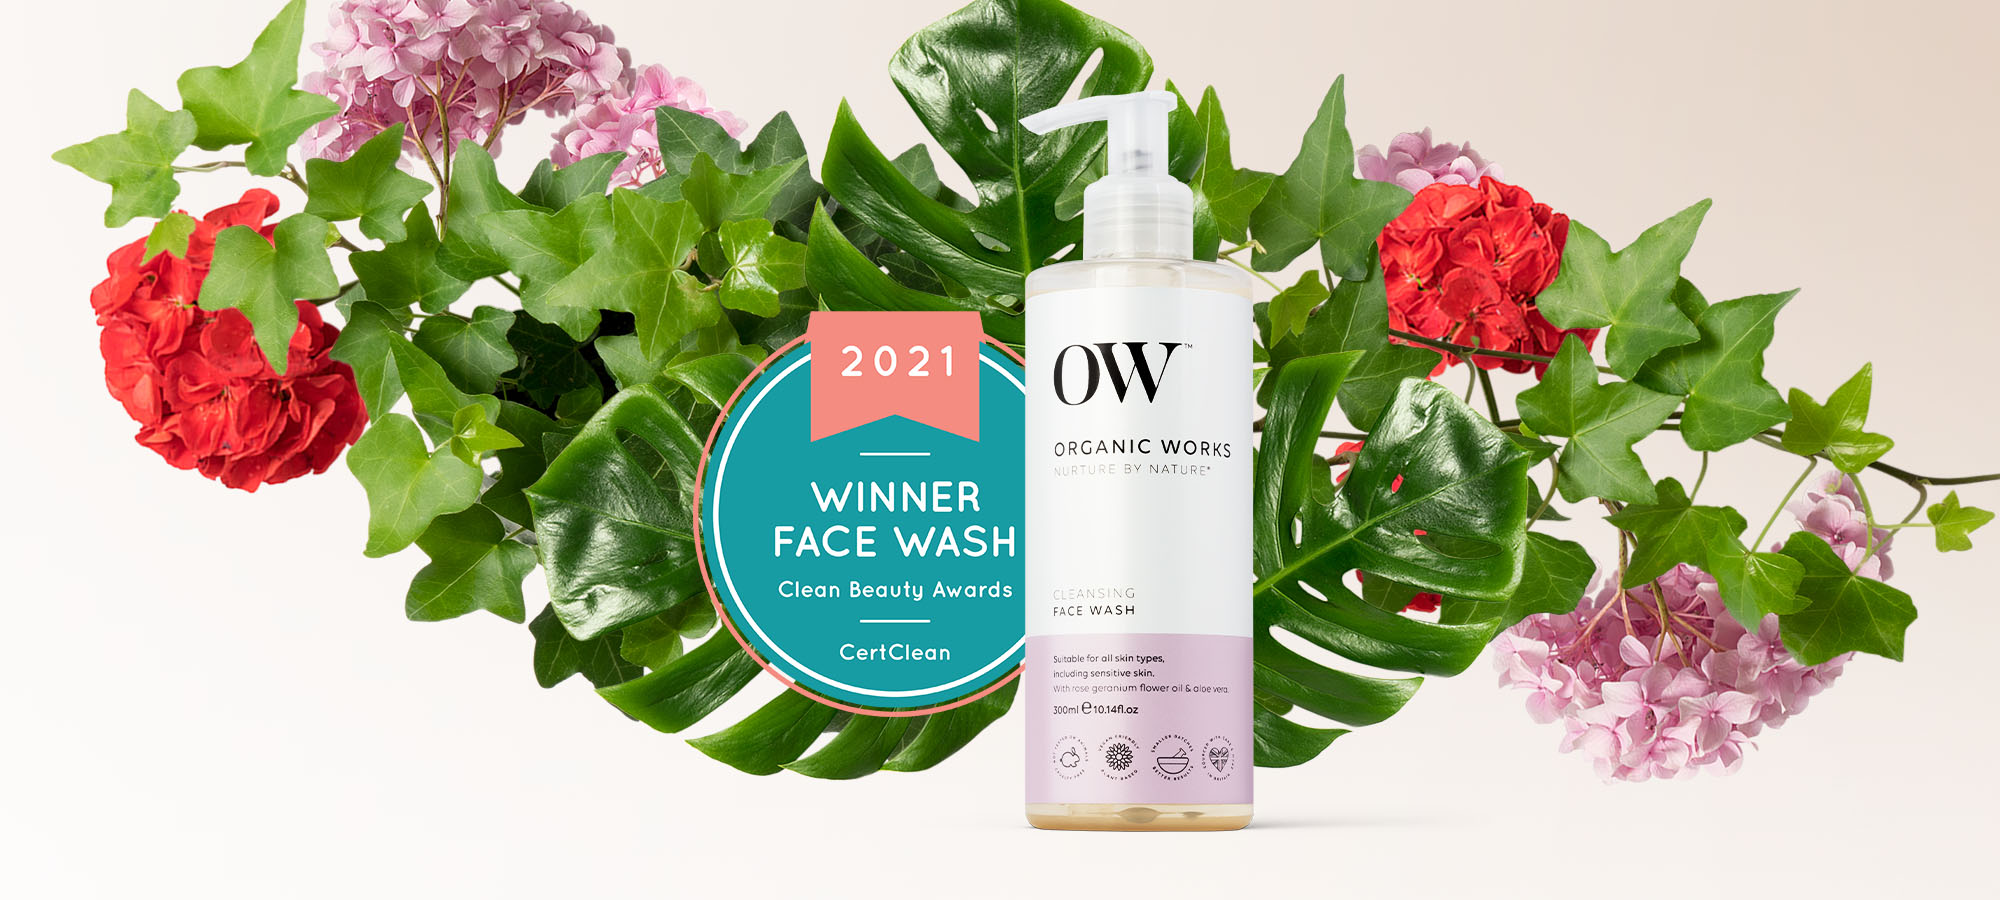 CertClean international clean beauty award winning OW Cleansing Face Wash on a floral background